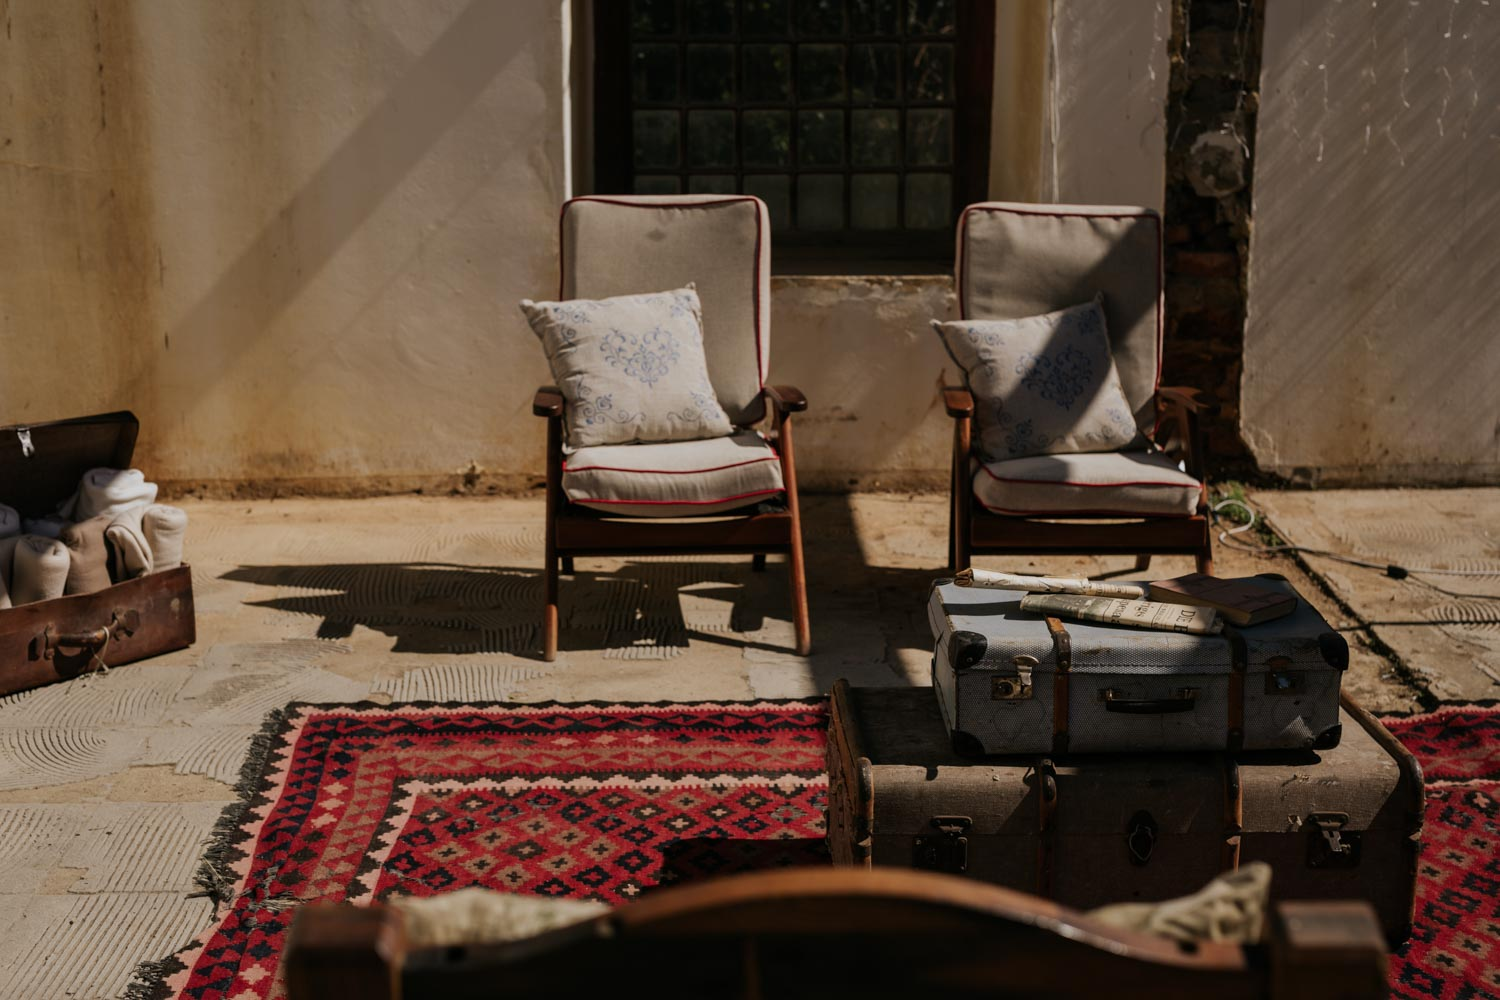 Two old midcentury chairs setup on an Persian rug for wedding guests to sit on during cocktail hour